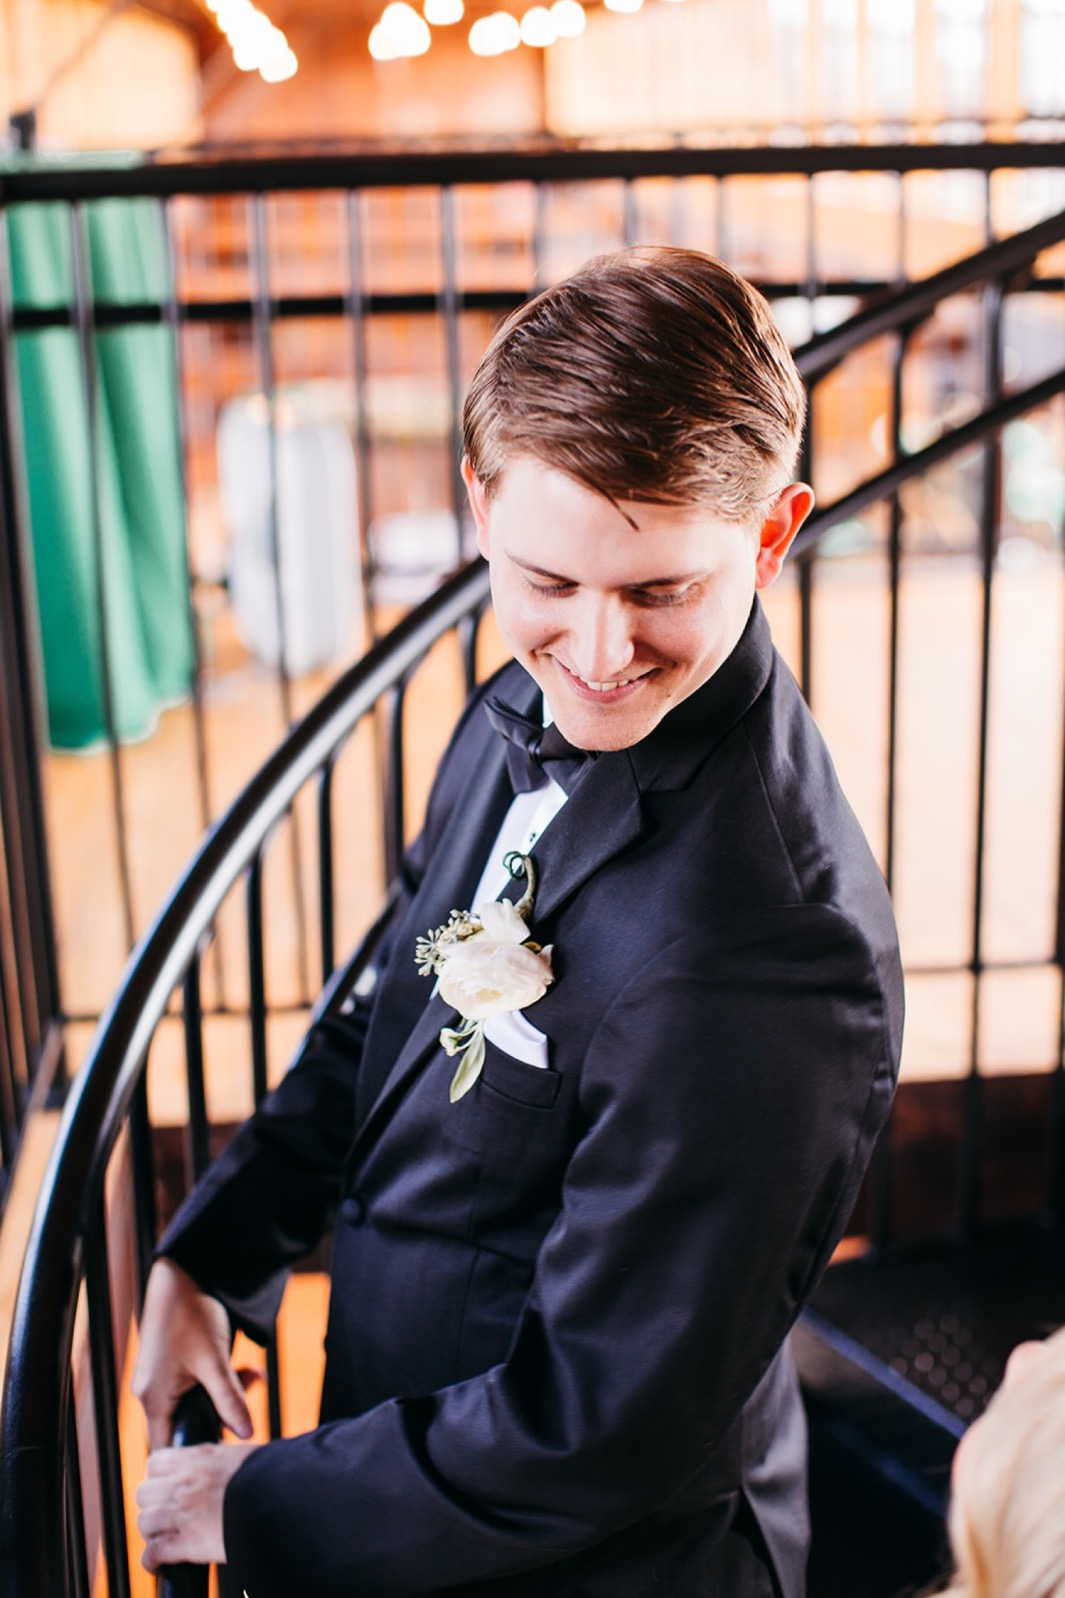 Groom smiles at the bride during the first look at their wedding in the Turnbull building.